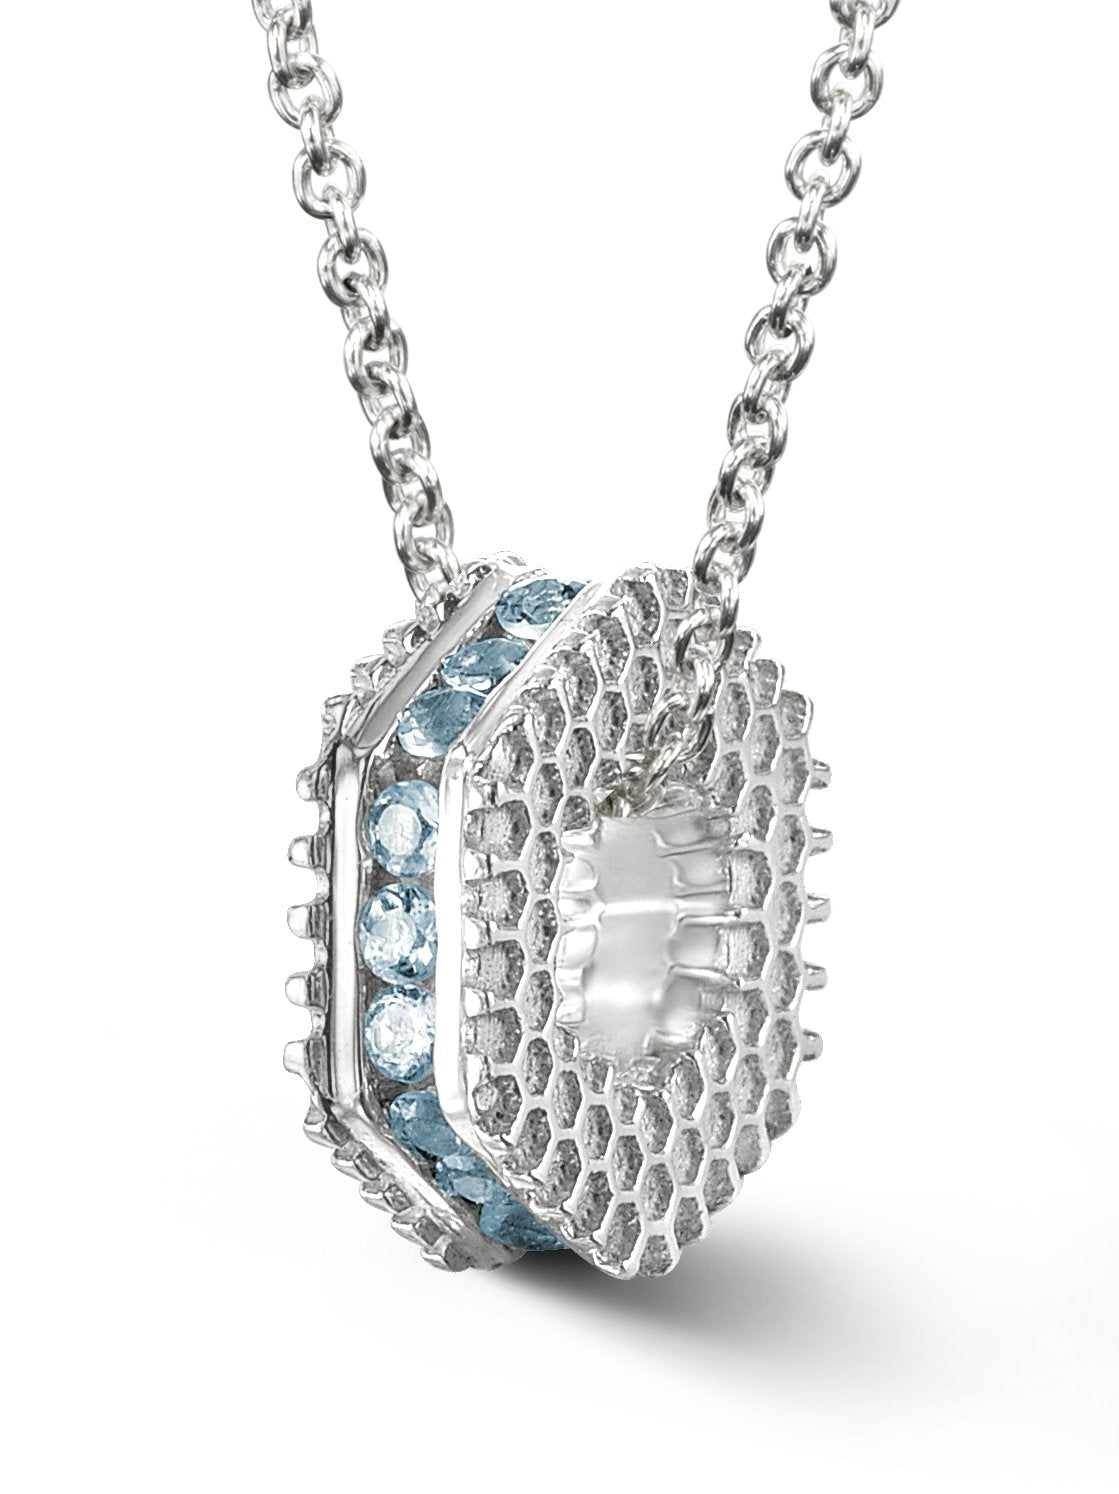 Bcouture March Mini Keepsake- Aquamarine at Arman's Jewellers Kitchener